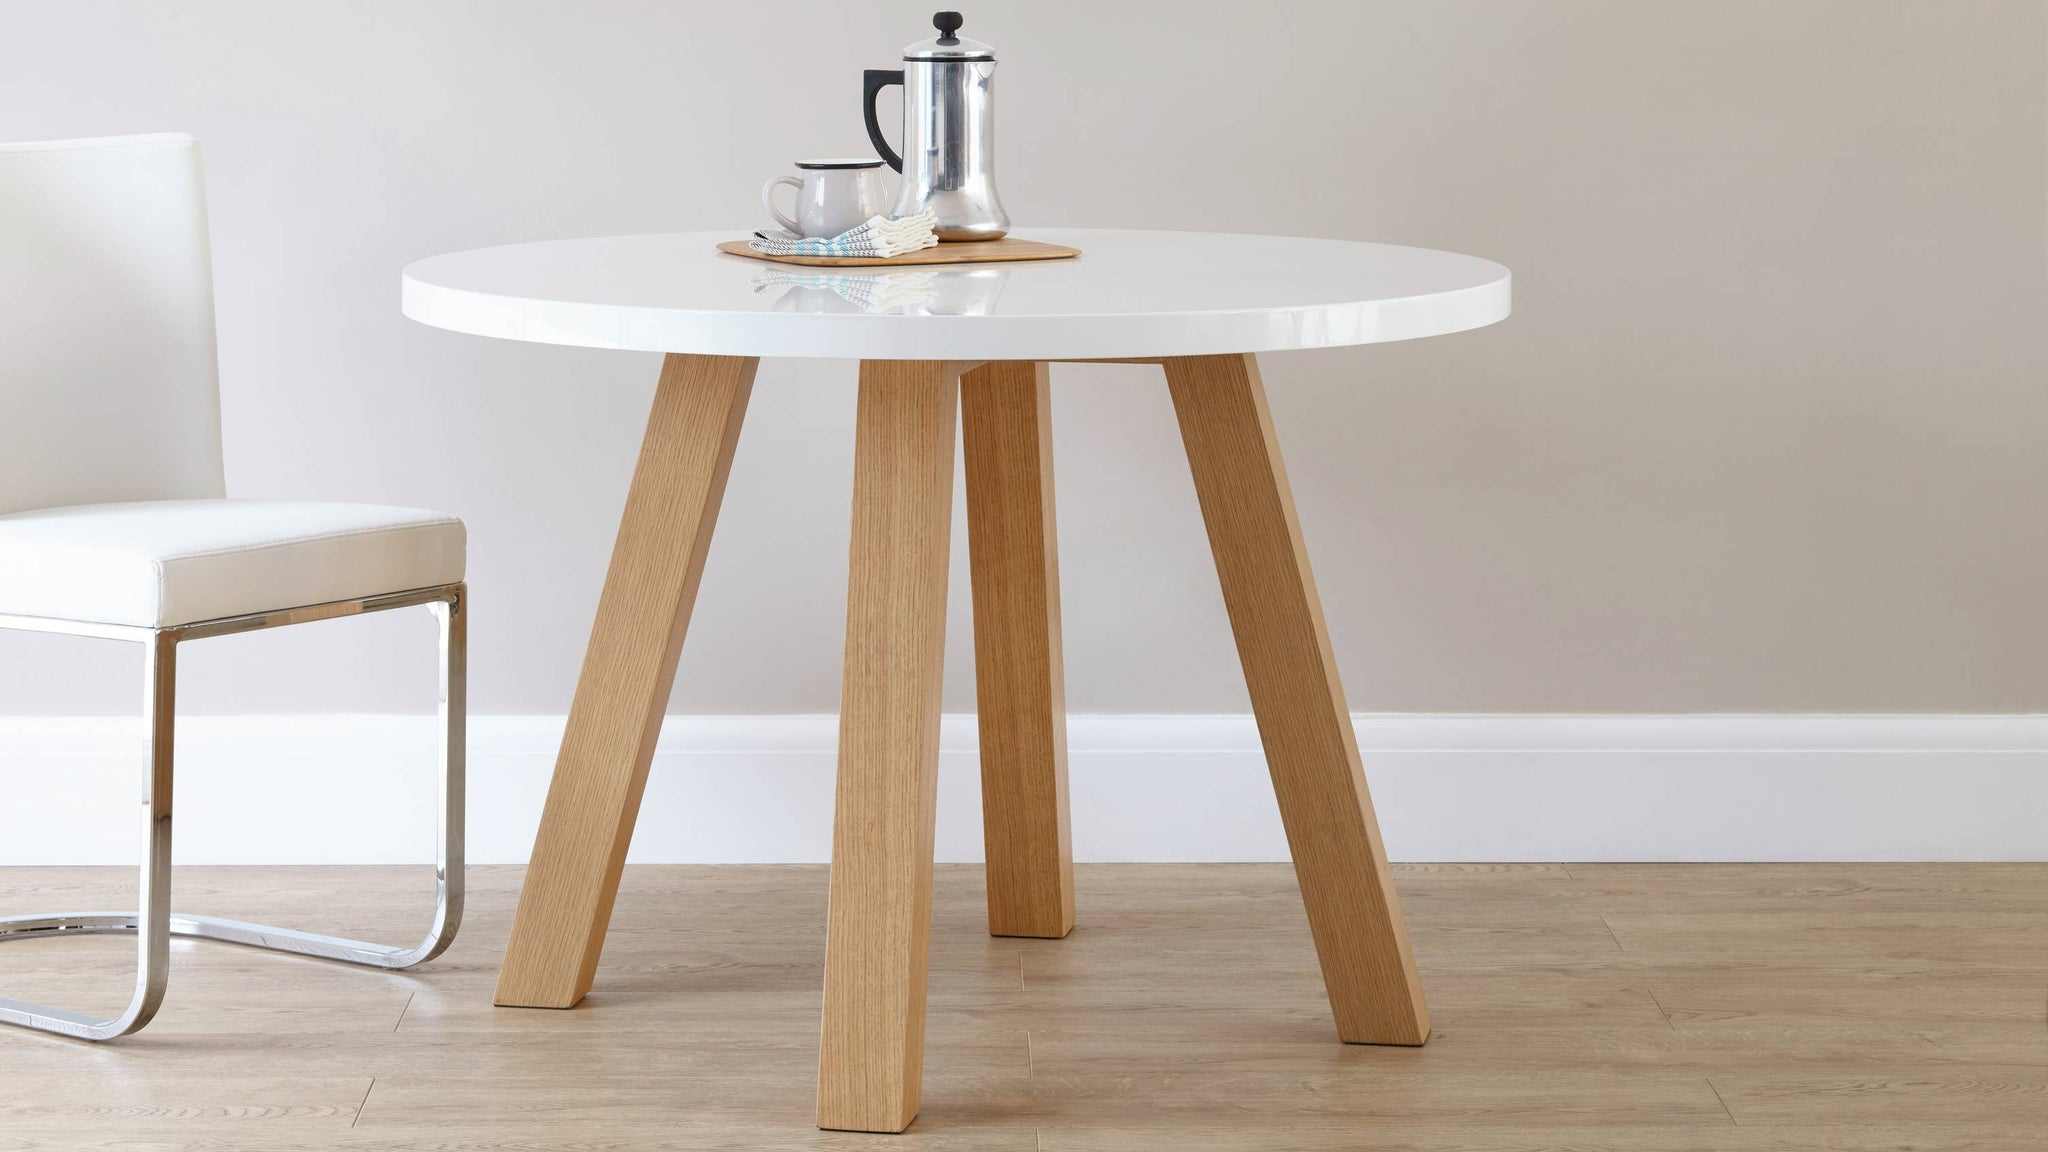 Modern 4 Seater White Gloss and Oak Dining Table Exclusively Danetti Julia Kendell Range